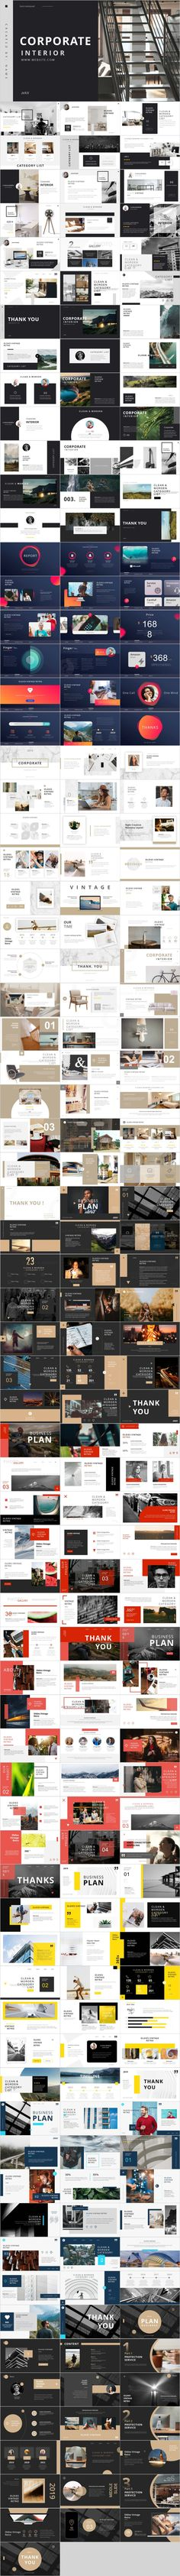 in 1 business plan report PowerPoint template 10 in 1 business plan report PowerPoint template – The highest quality PowerPoint Templates and Keynote Templates Professional Powerpoint Templates, Microsoft Powerpoint, Powerpoint Presentation Templates, Keynote Template, Report Template, Infographic Powerpoint, Presentation Backgrounds, Background Templates, Plan Design